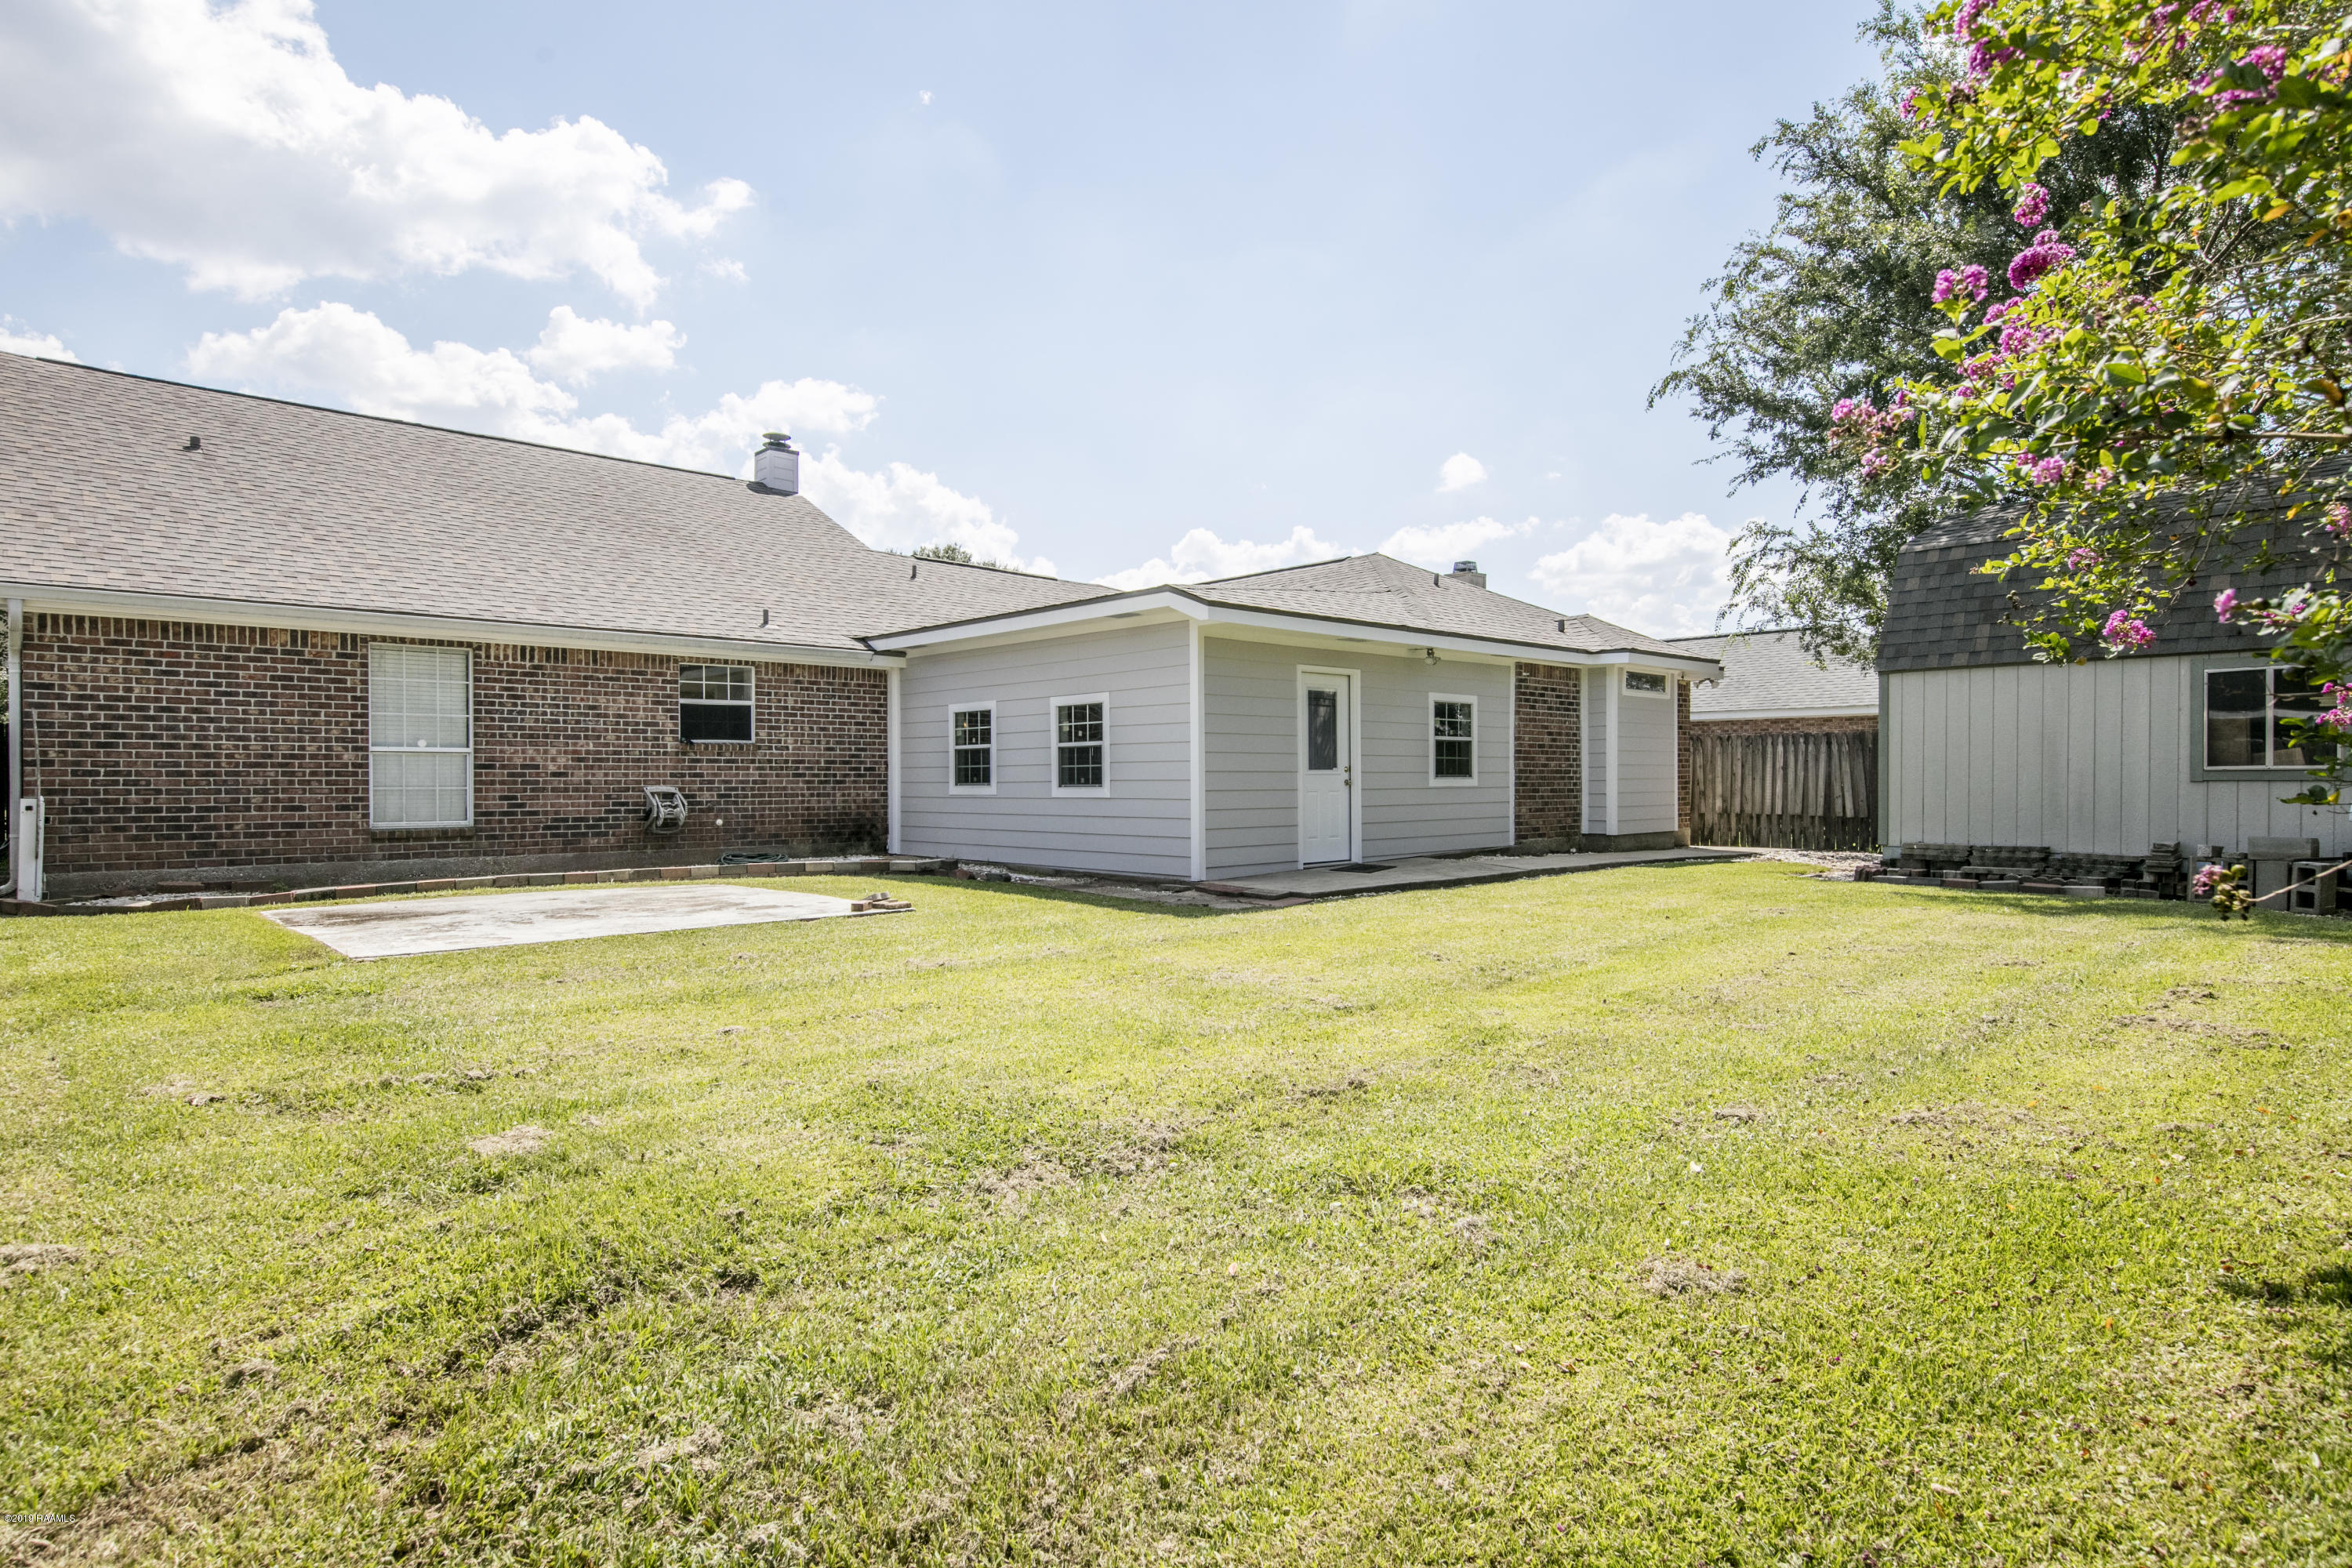 217 Sundown Drive, Broussard, LA 70518 Photo #19